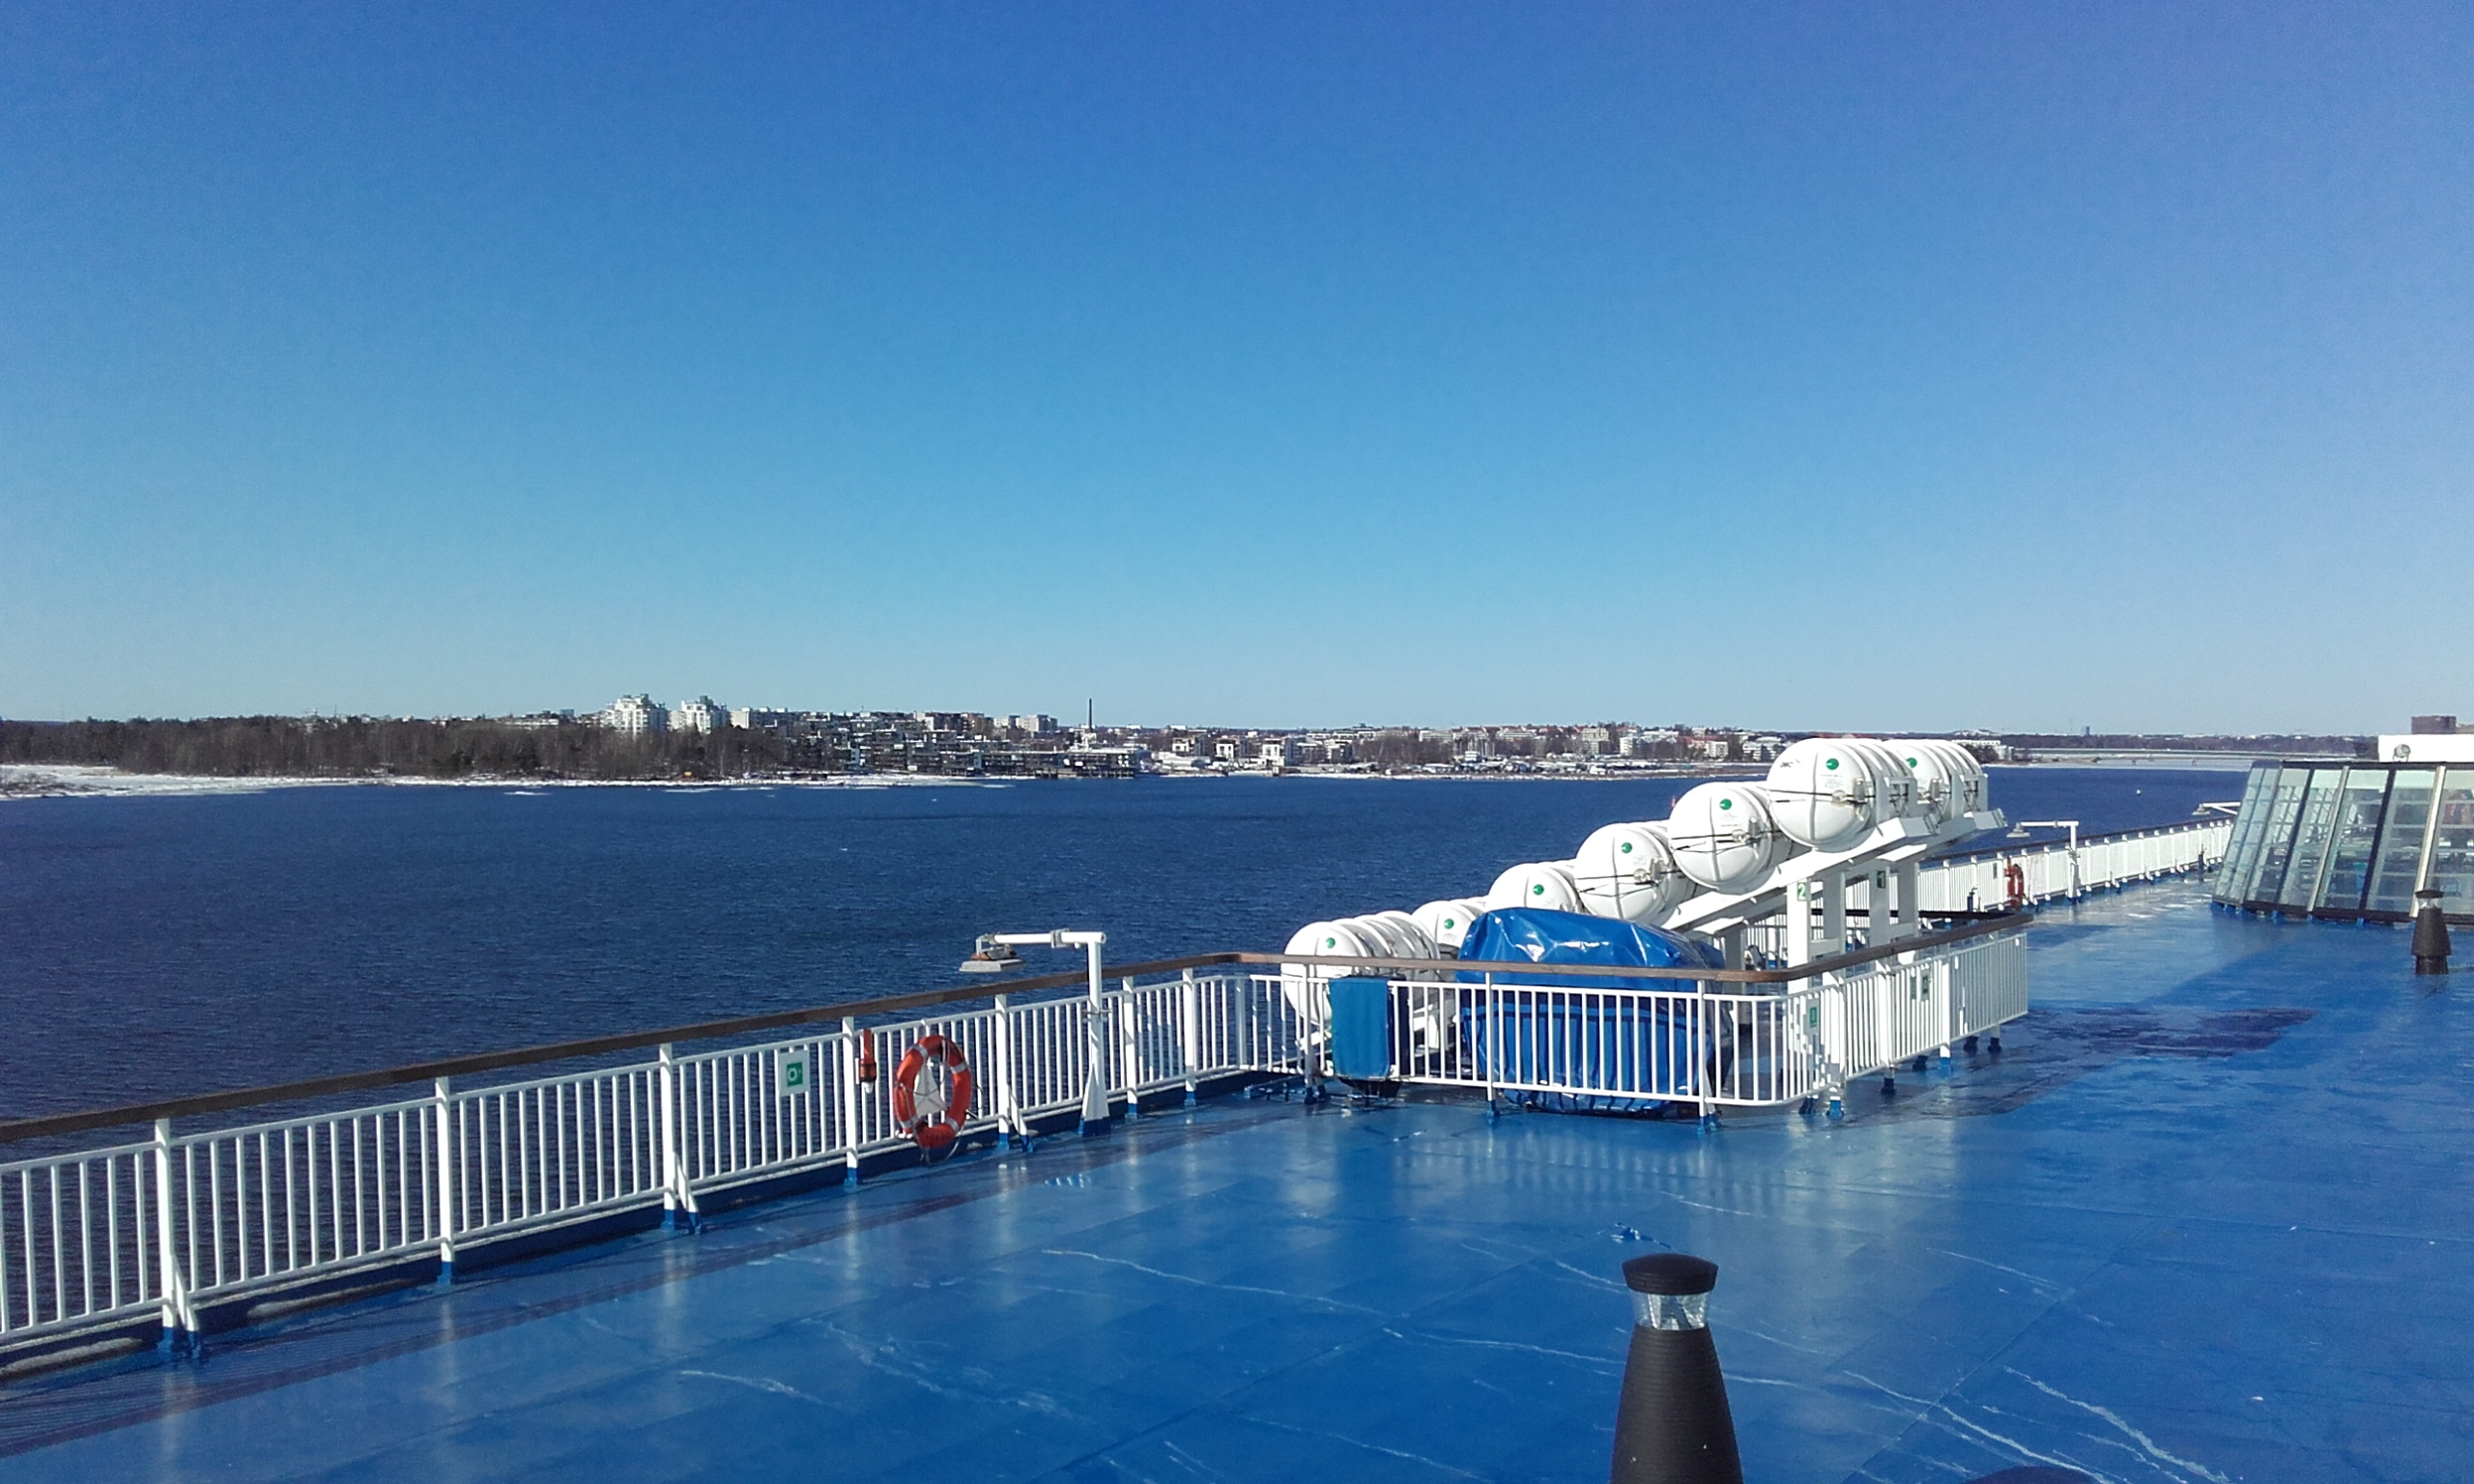 Ferry de Finlandia a Estonia